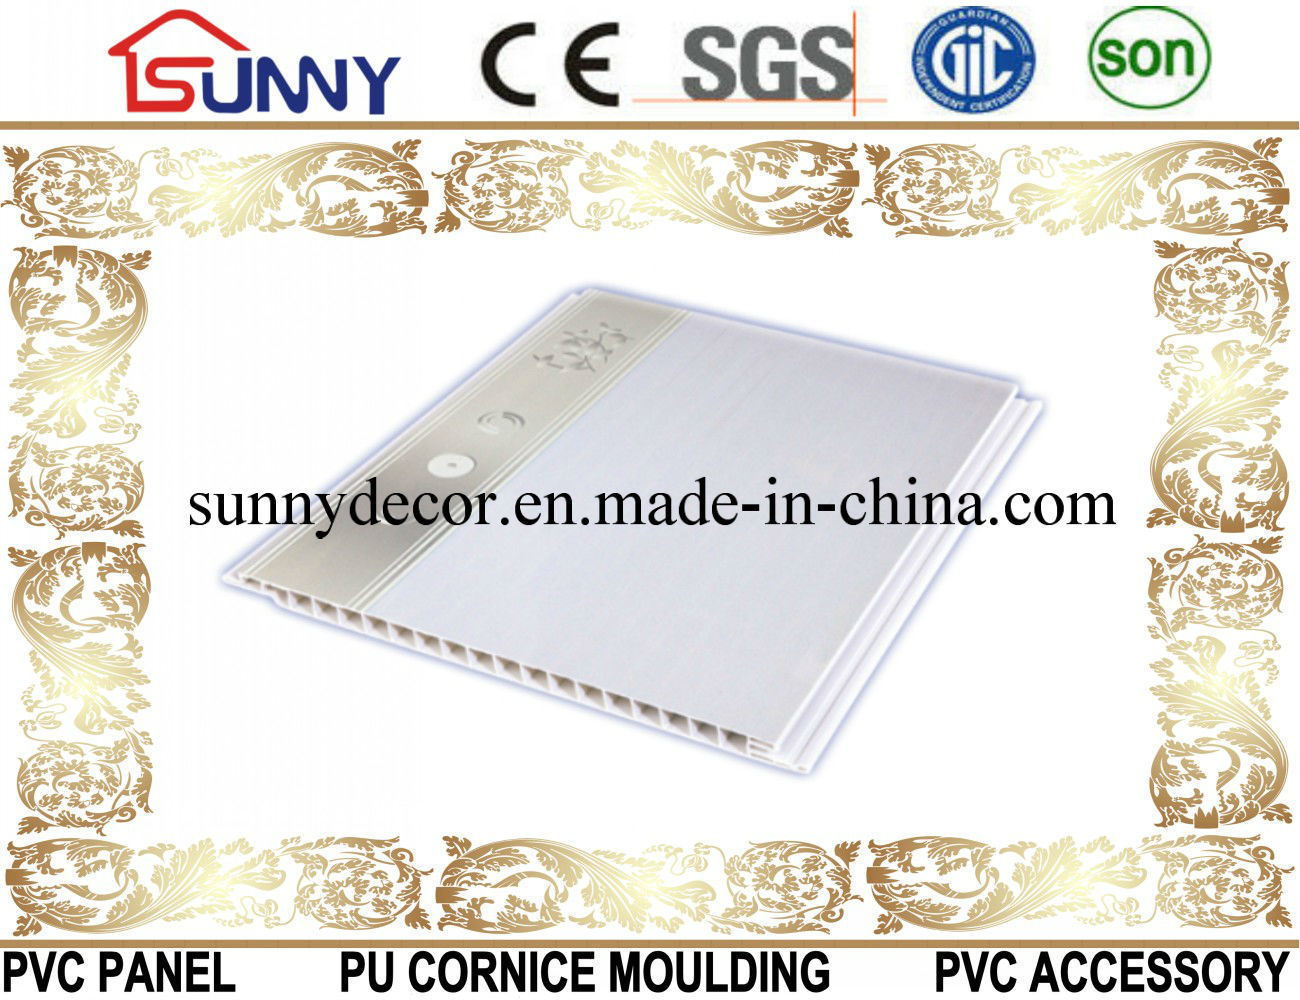 Good-Quality PVC Panel-PVC Ceiling-PVC Wall Panel for Decoration